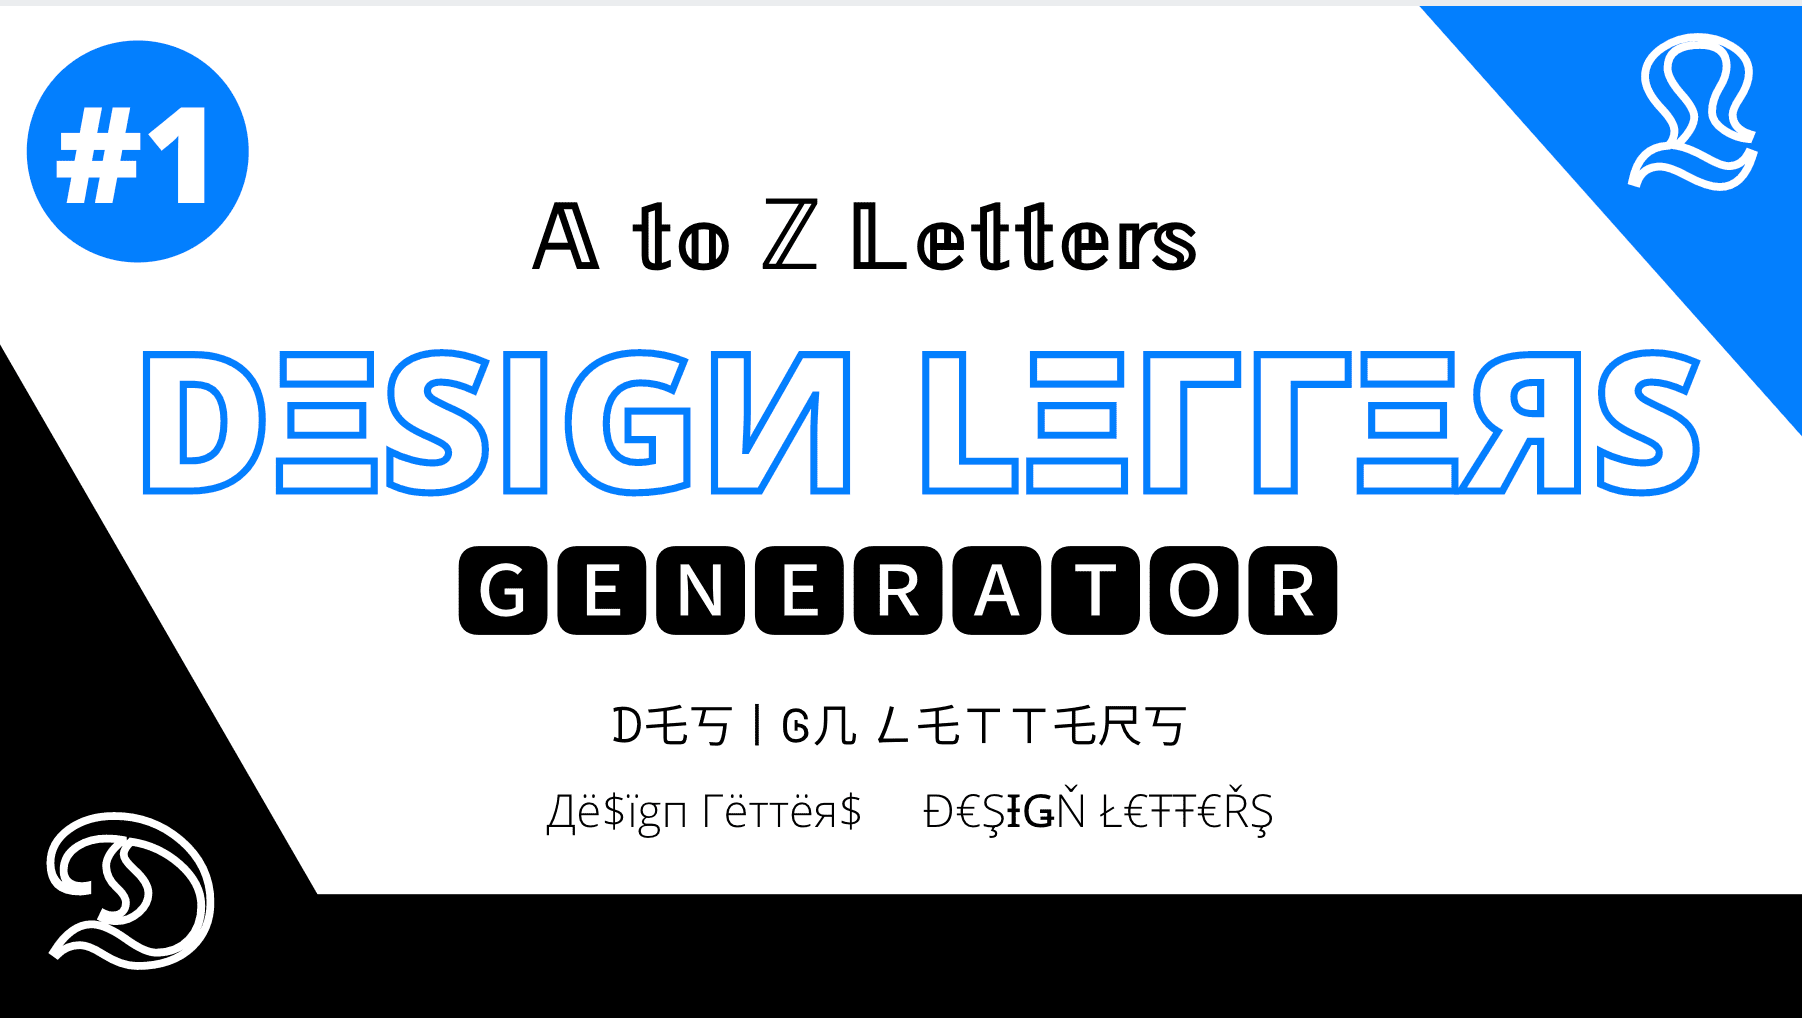 ⚡ Design Letters ᐈ A to Z 𝔇𝔢𝔰𝔦𝔤𝔫 𝕃𝕖𝕥𝕥𝕖𝕣𝕤 Generator